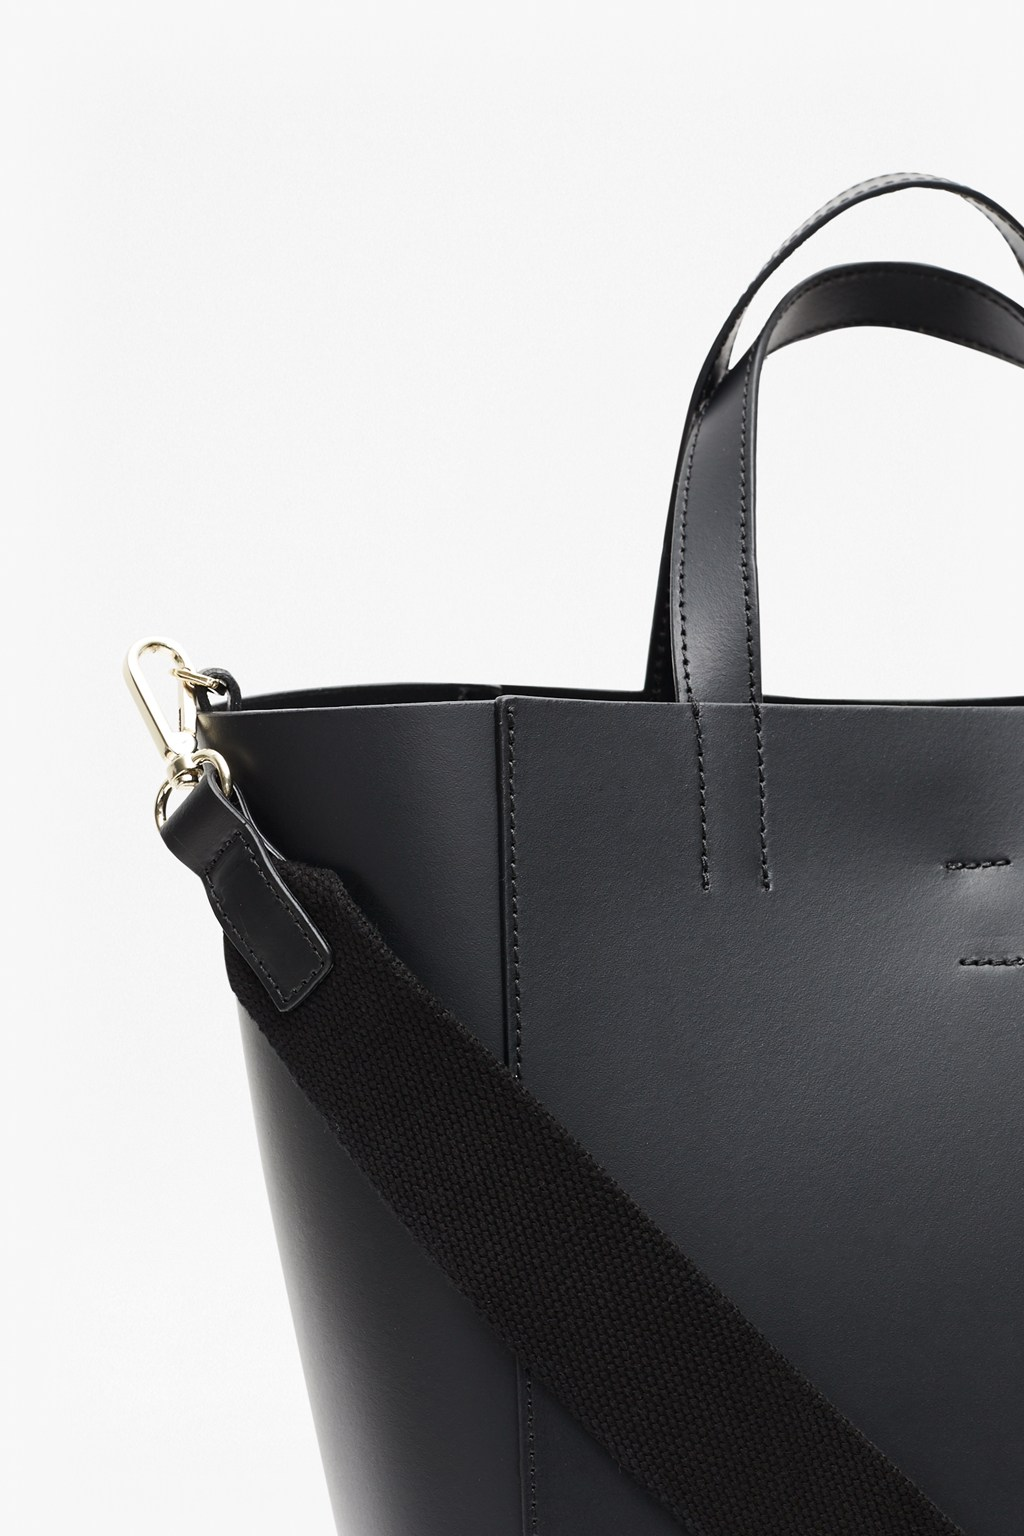 loading images... loading images... loading images... Vachetta Leather Tote  Bag. loading images. ebadc89578530